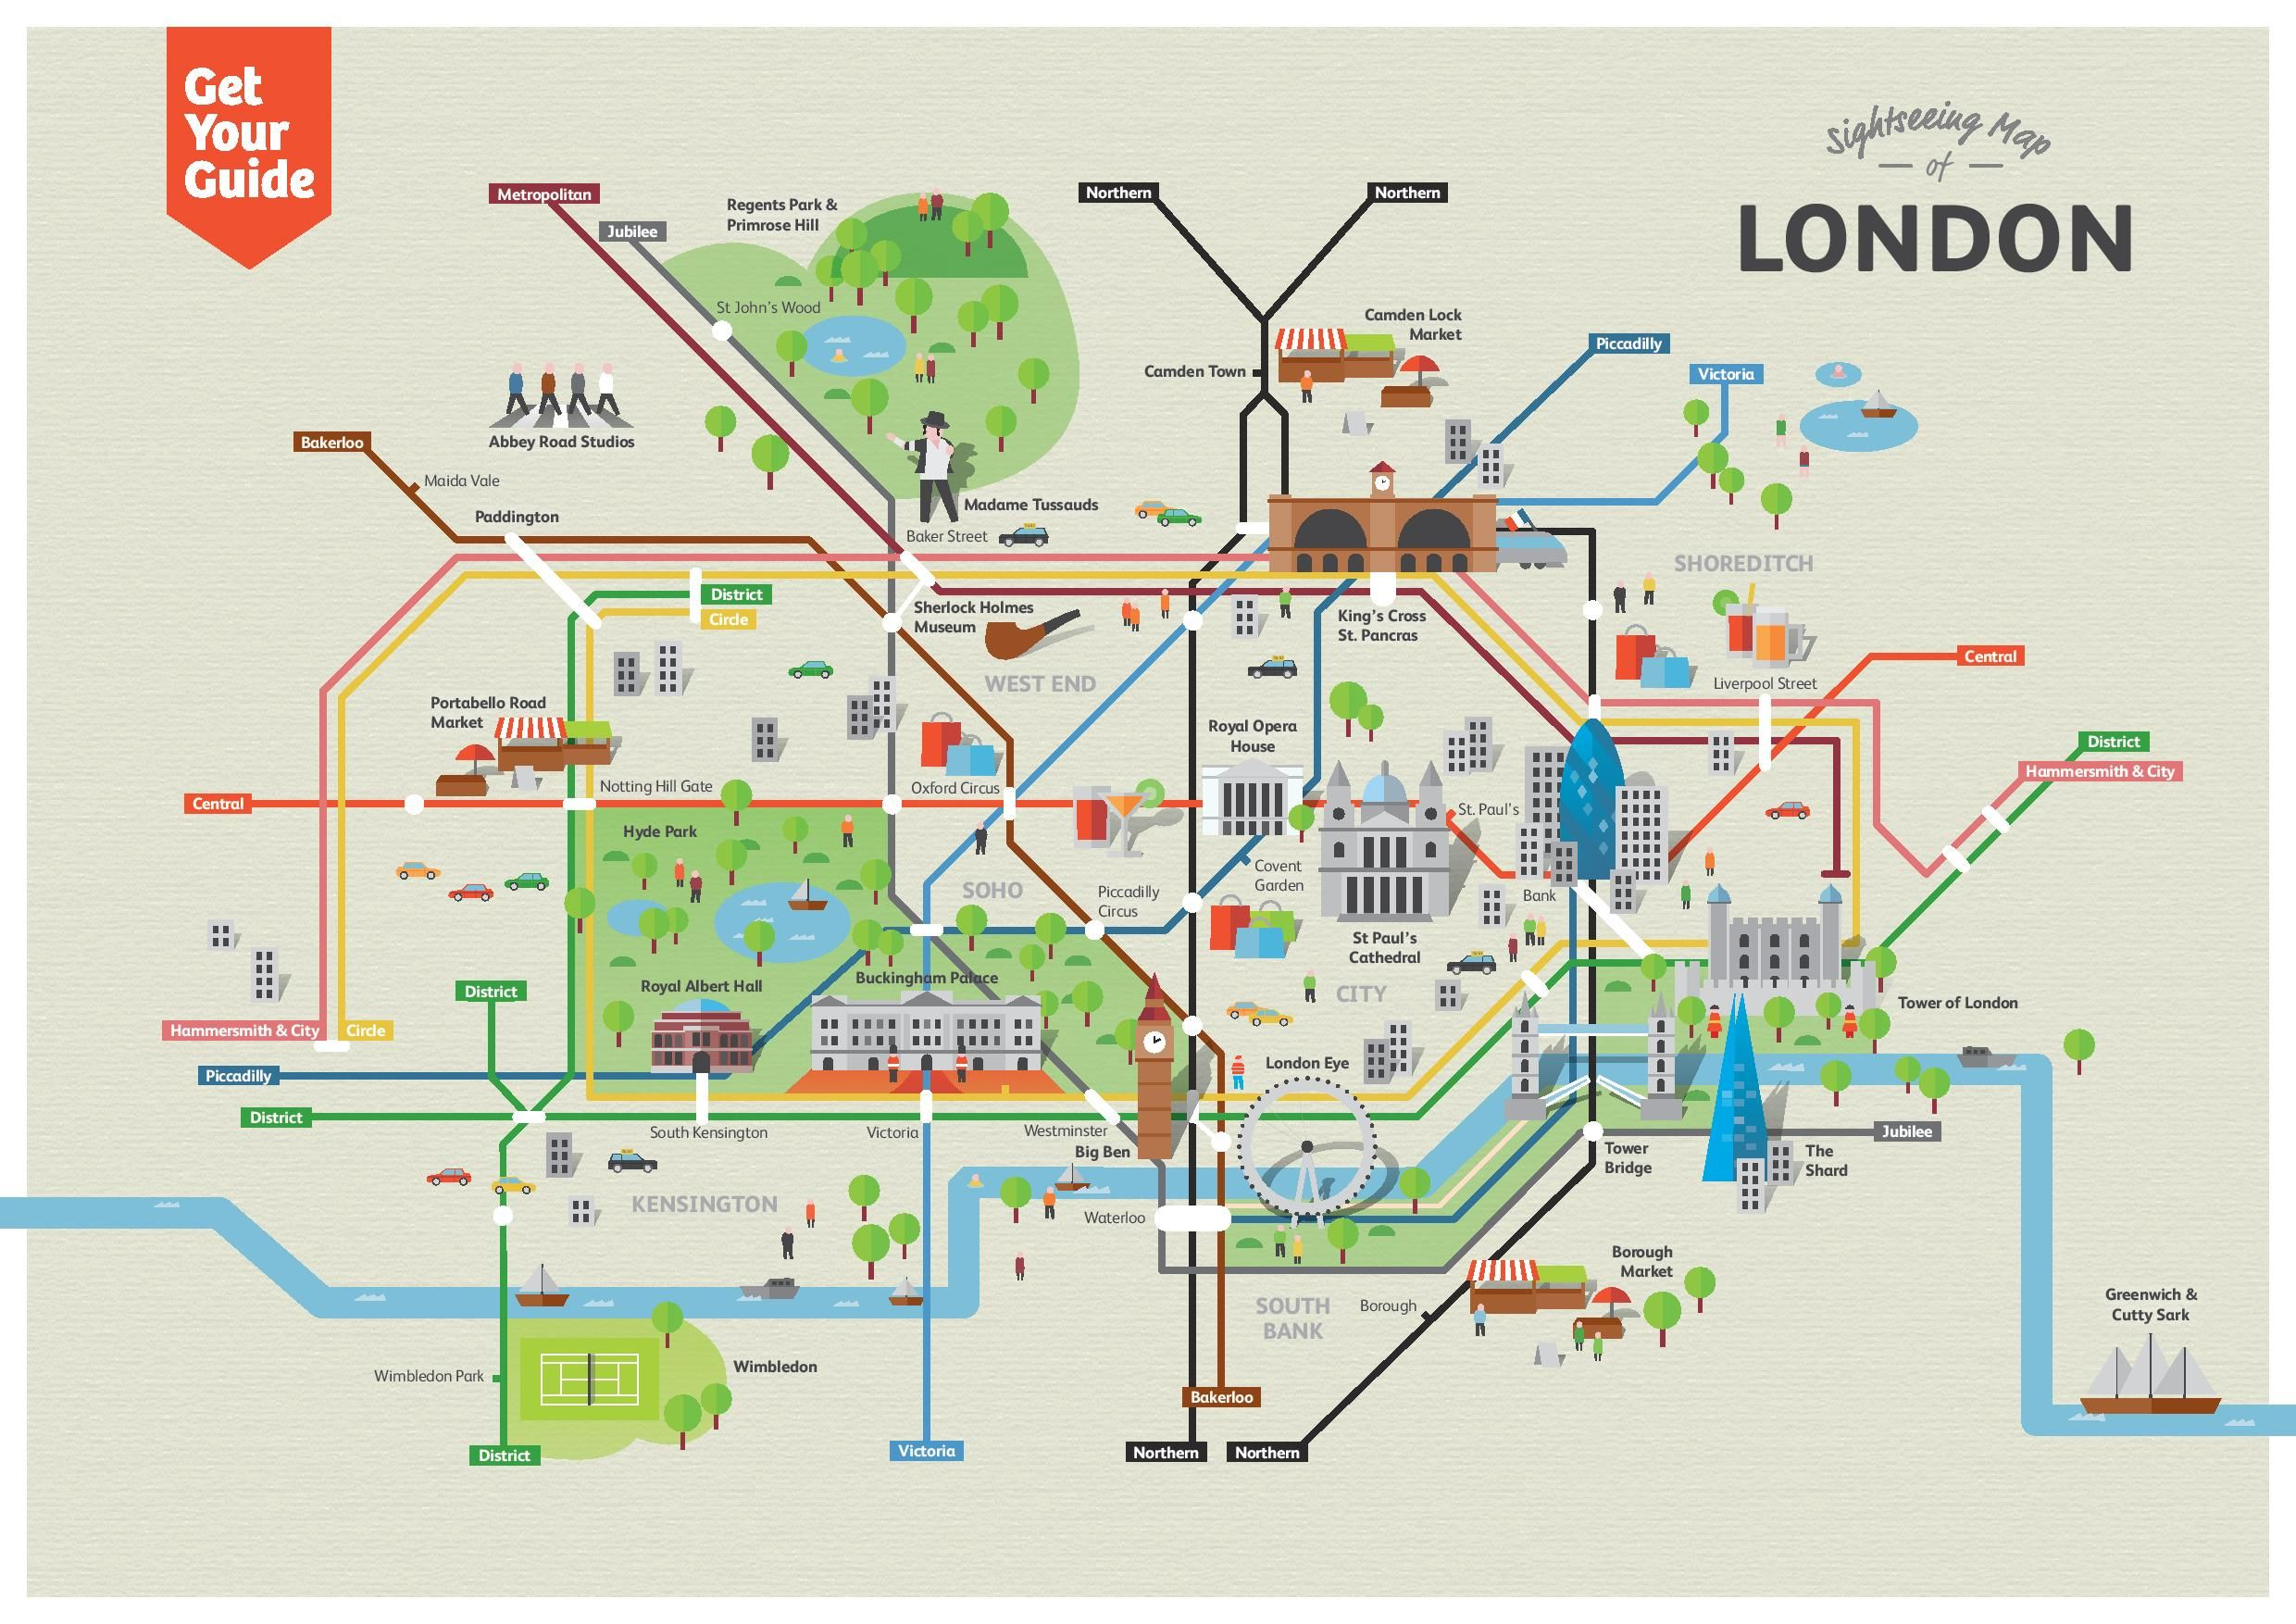 Sightseeing Map Of London Attractions